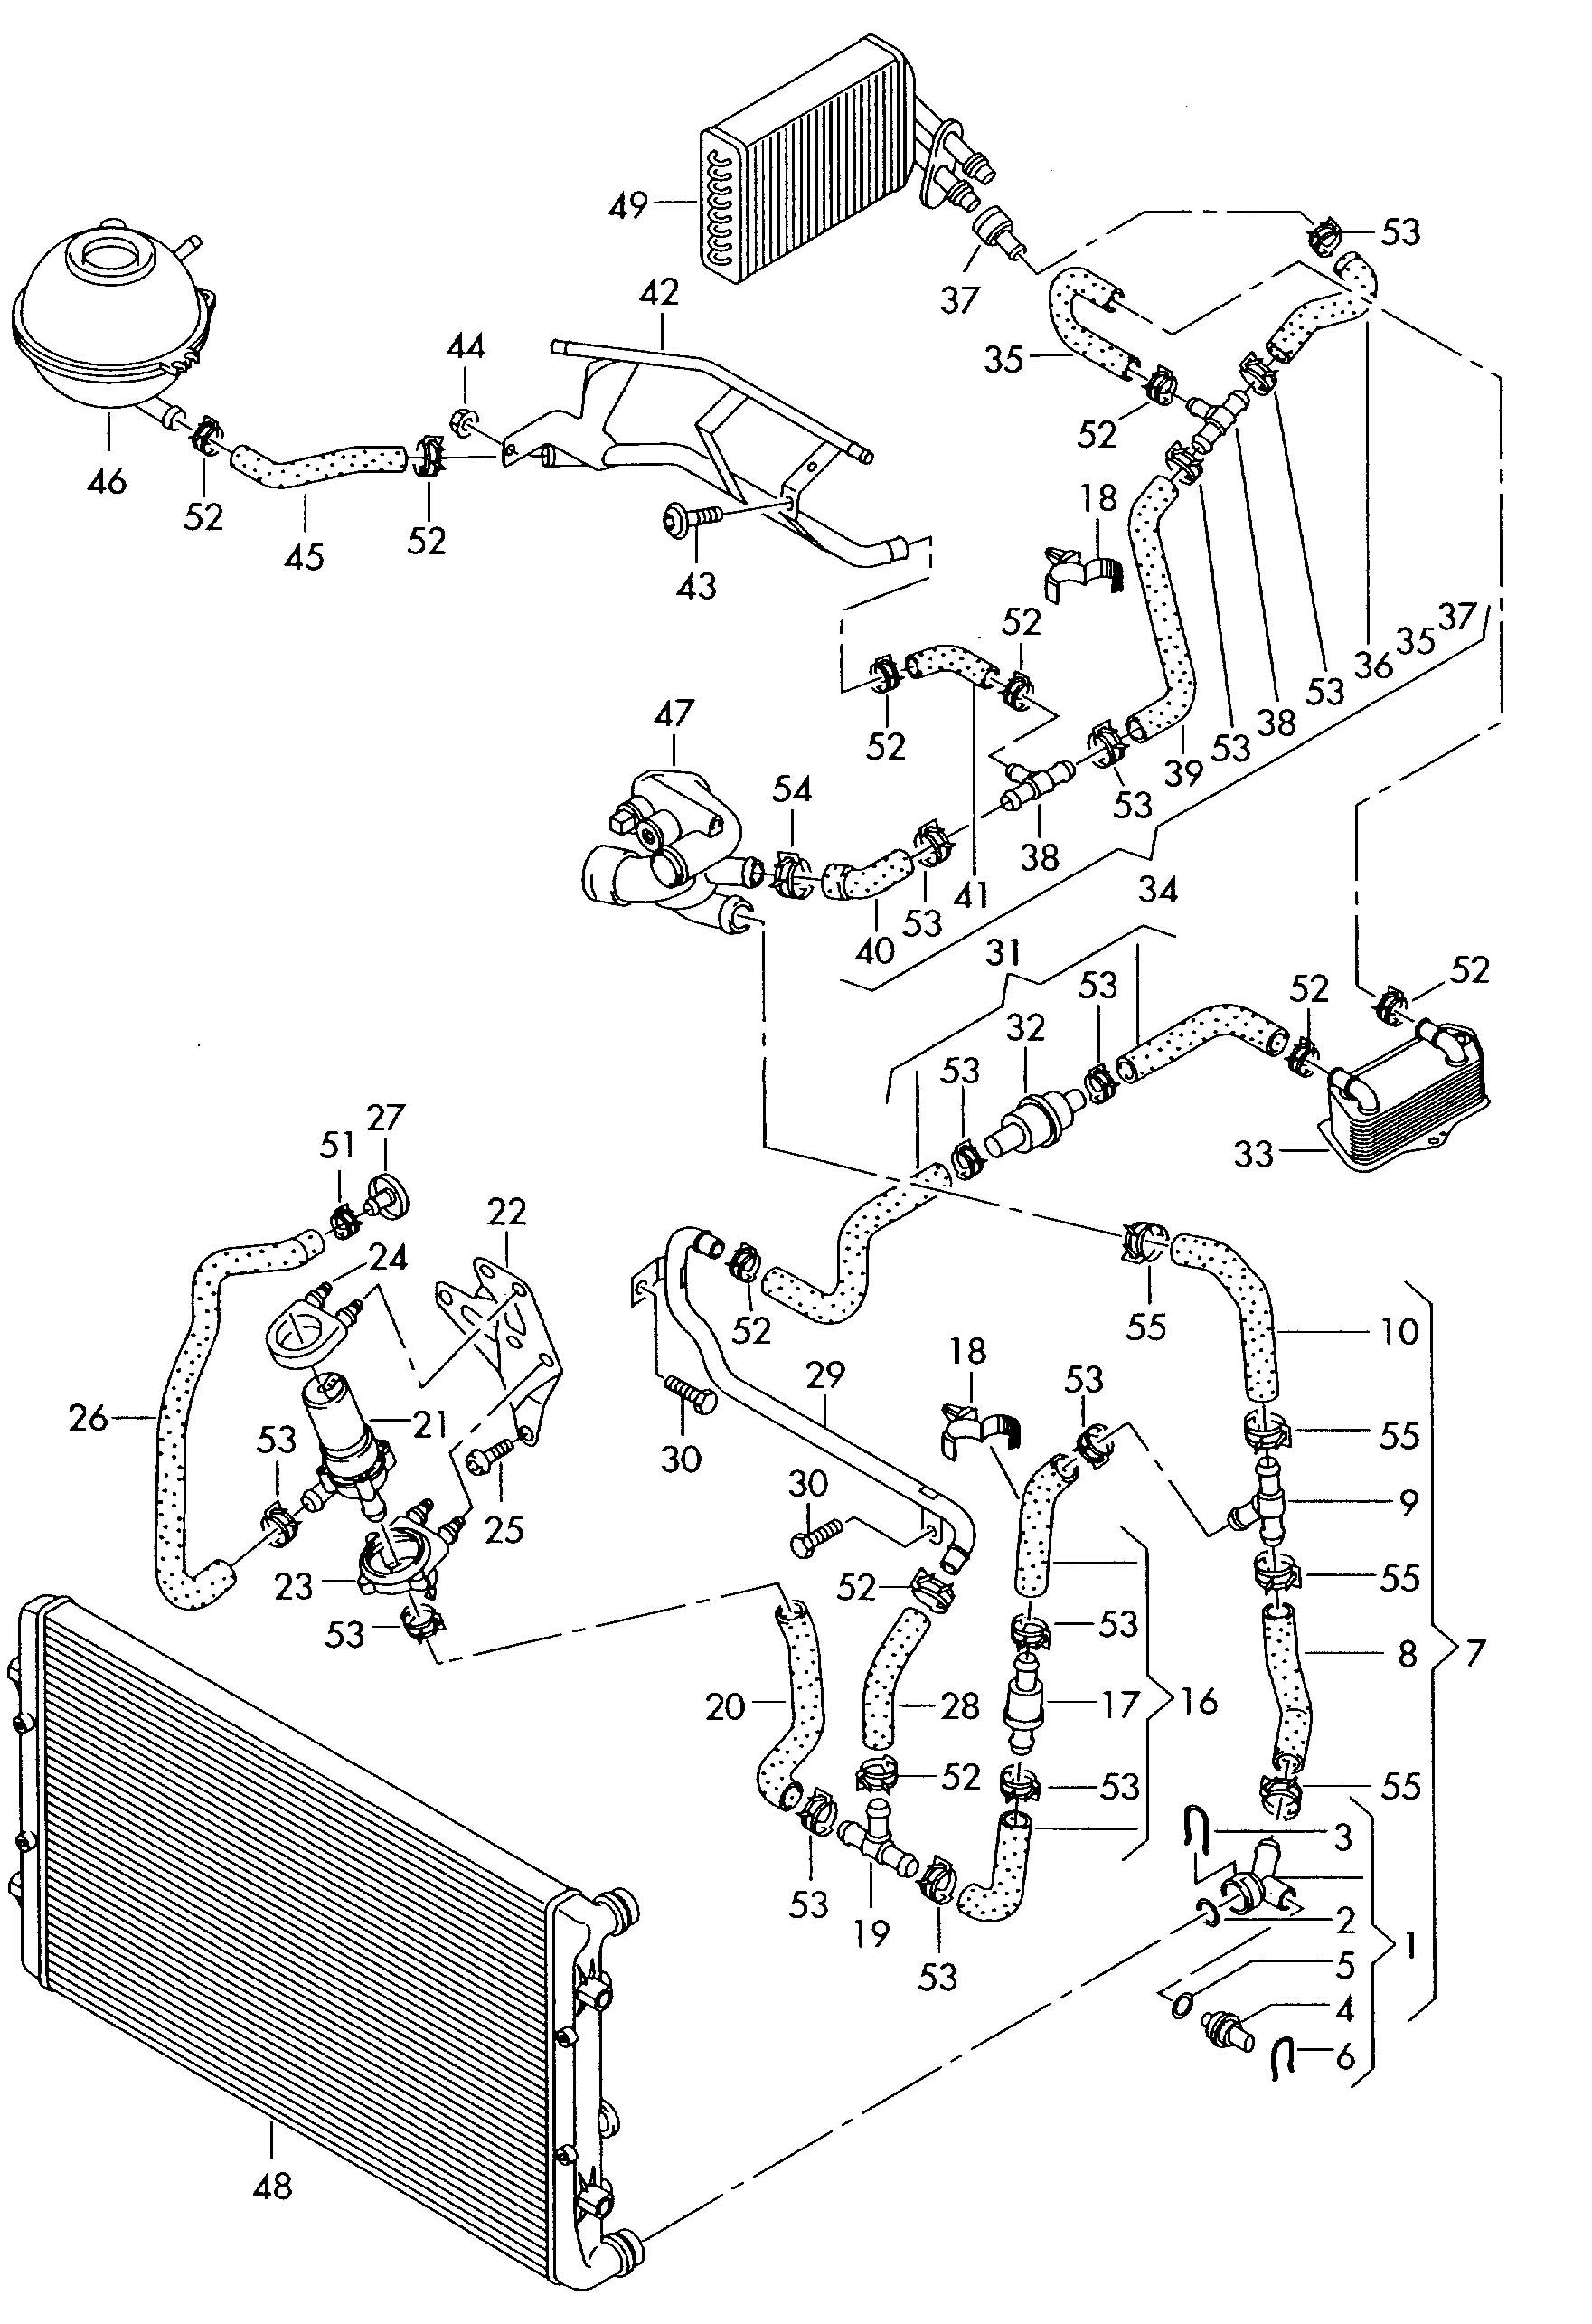 2003 Audi All Road Engine Diagram Wiring Library Coolant Pipe Also 1977 Fj40 Likewise 1990 Toyota Pickup 2000 A6 Cooling System Diy Diagrams U2022 Rh Dancesalsa Co 2004